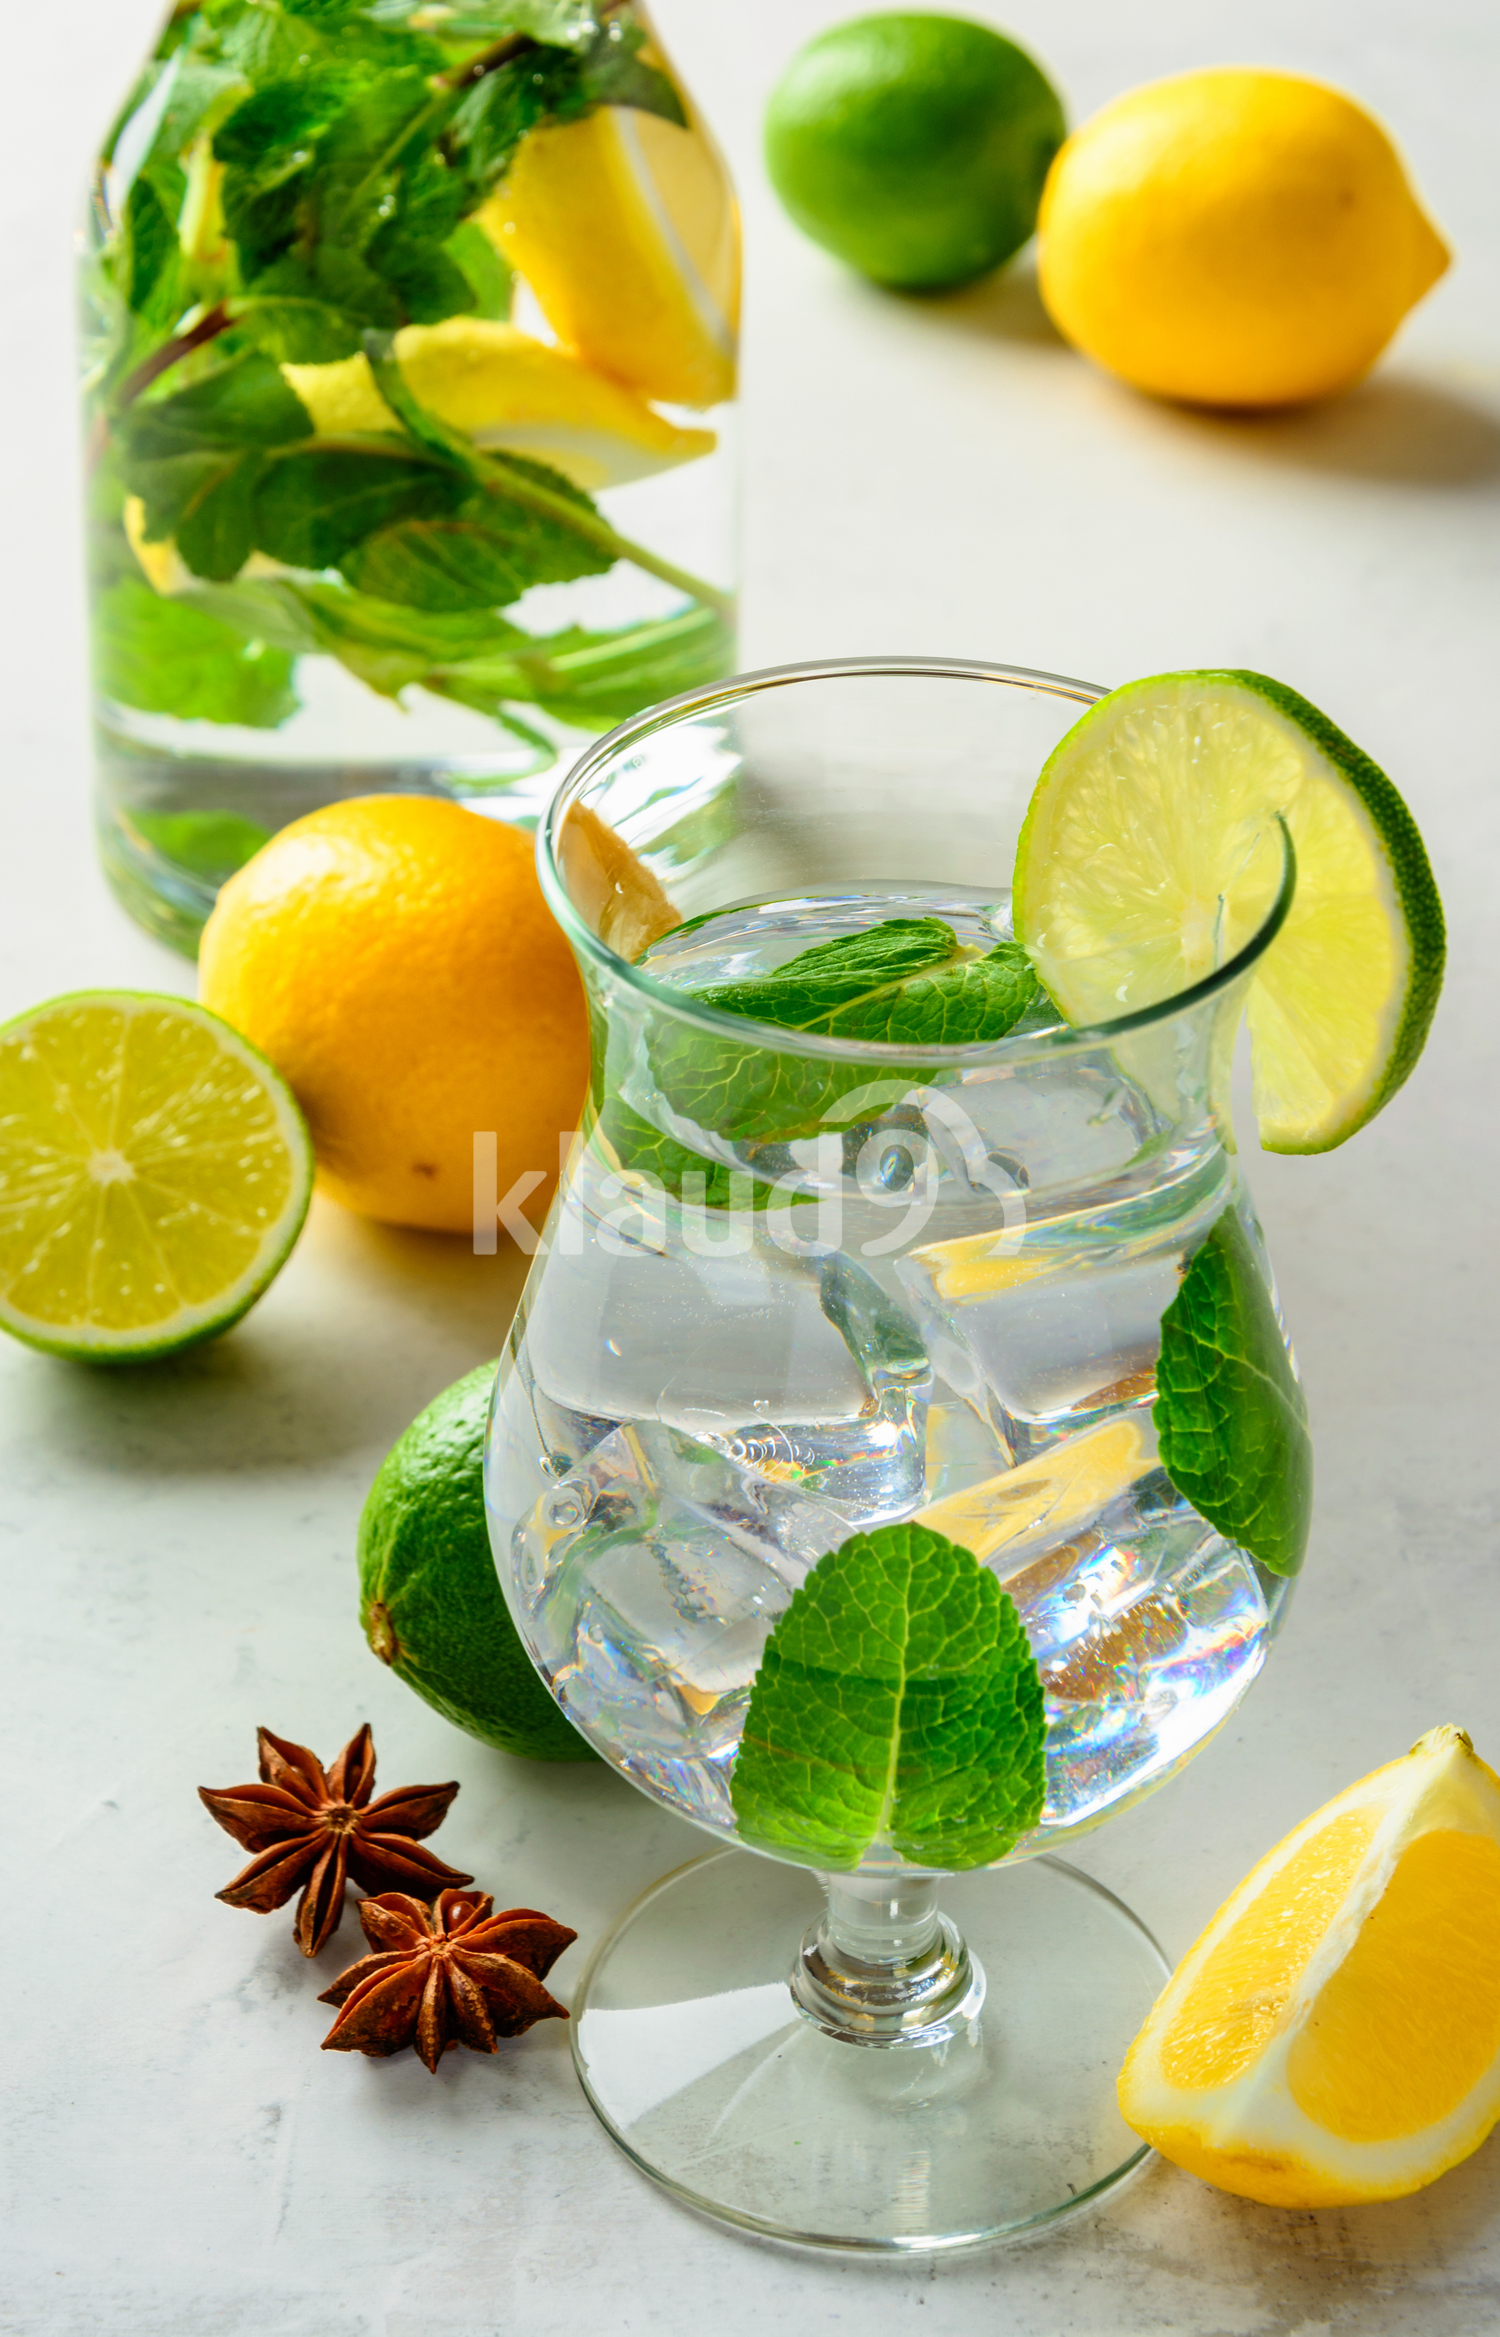 lemonade in a glass on a white background.